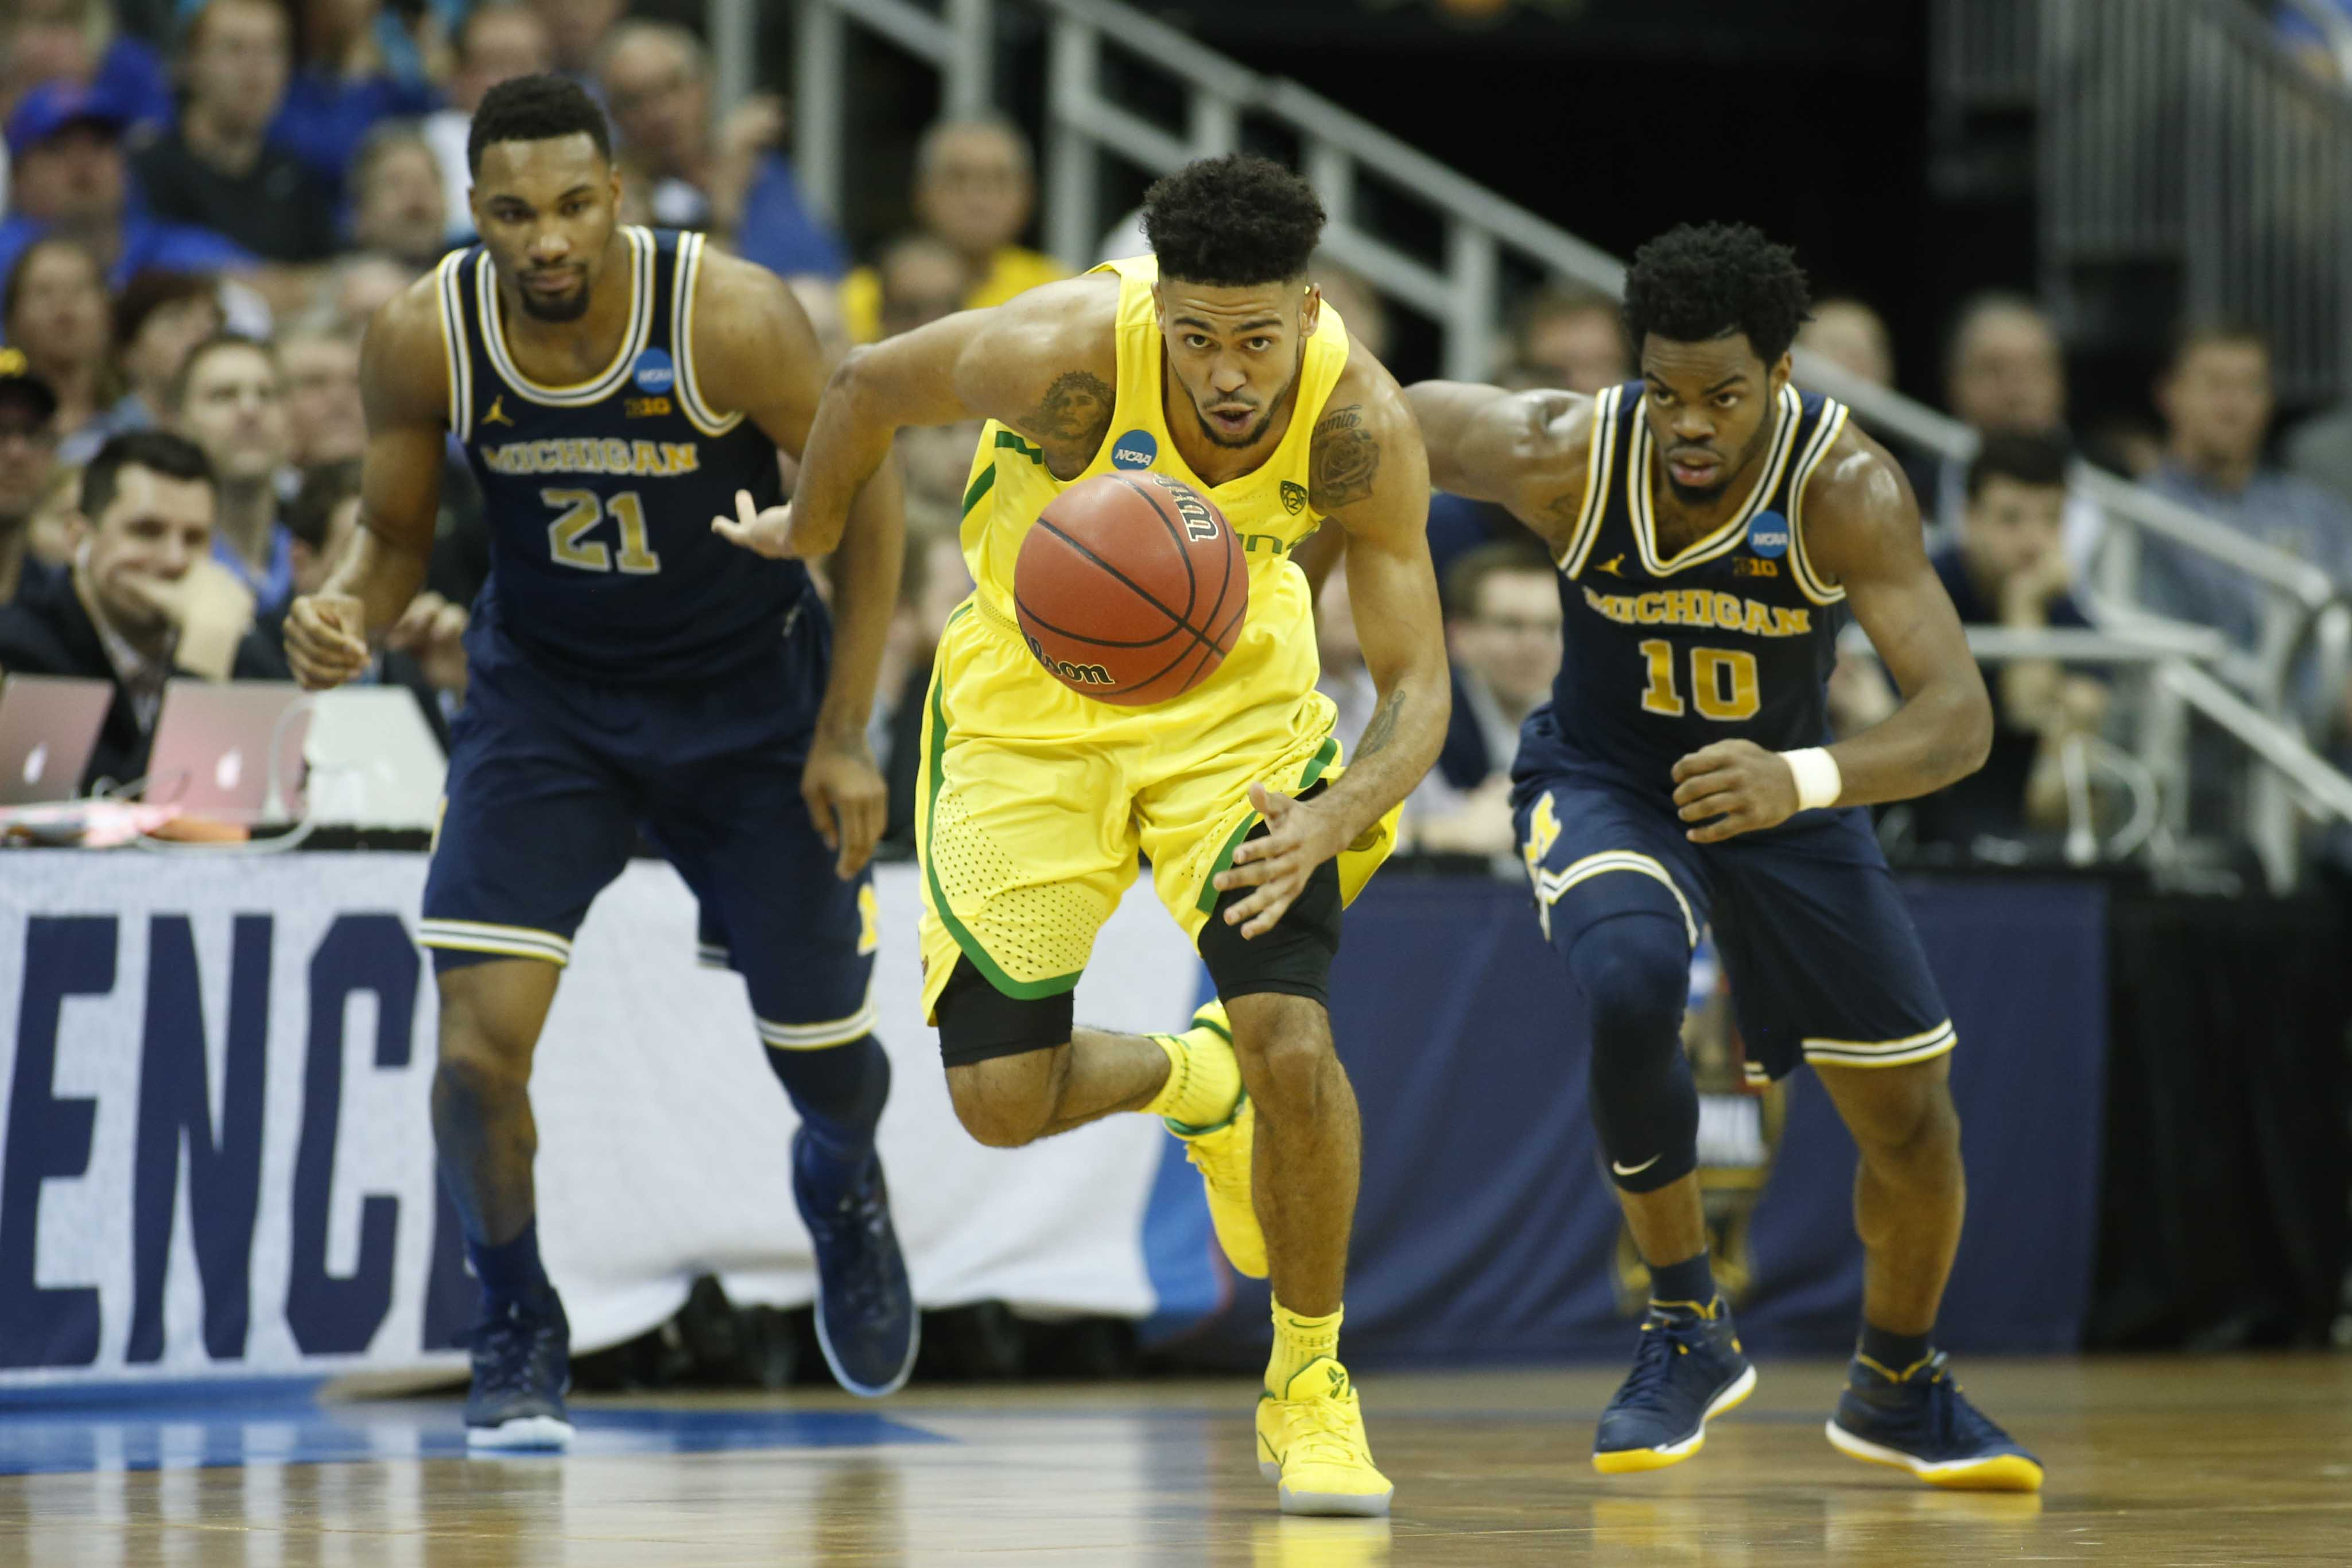 9966594-ncaa-basketball-ncaa-tournament-midwest-regional-oregon-vs-michigan